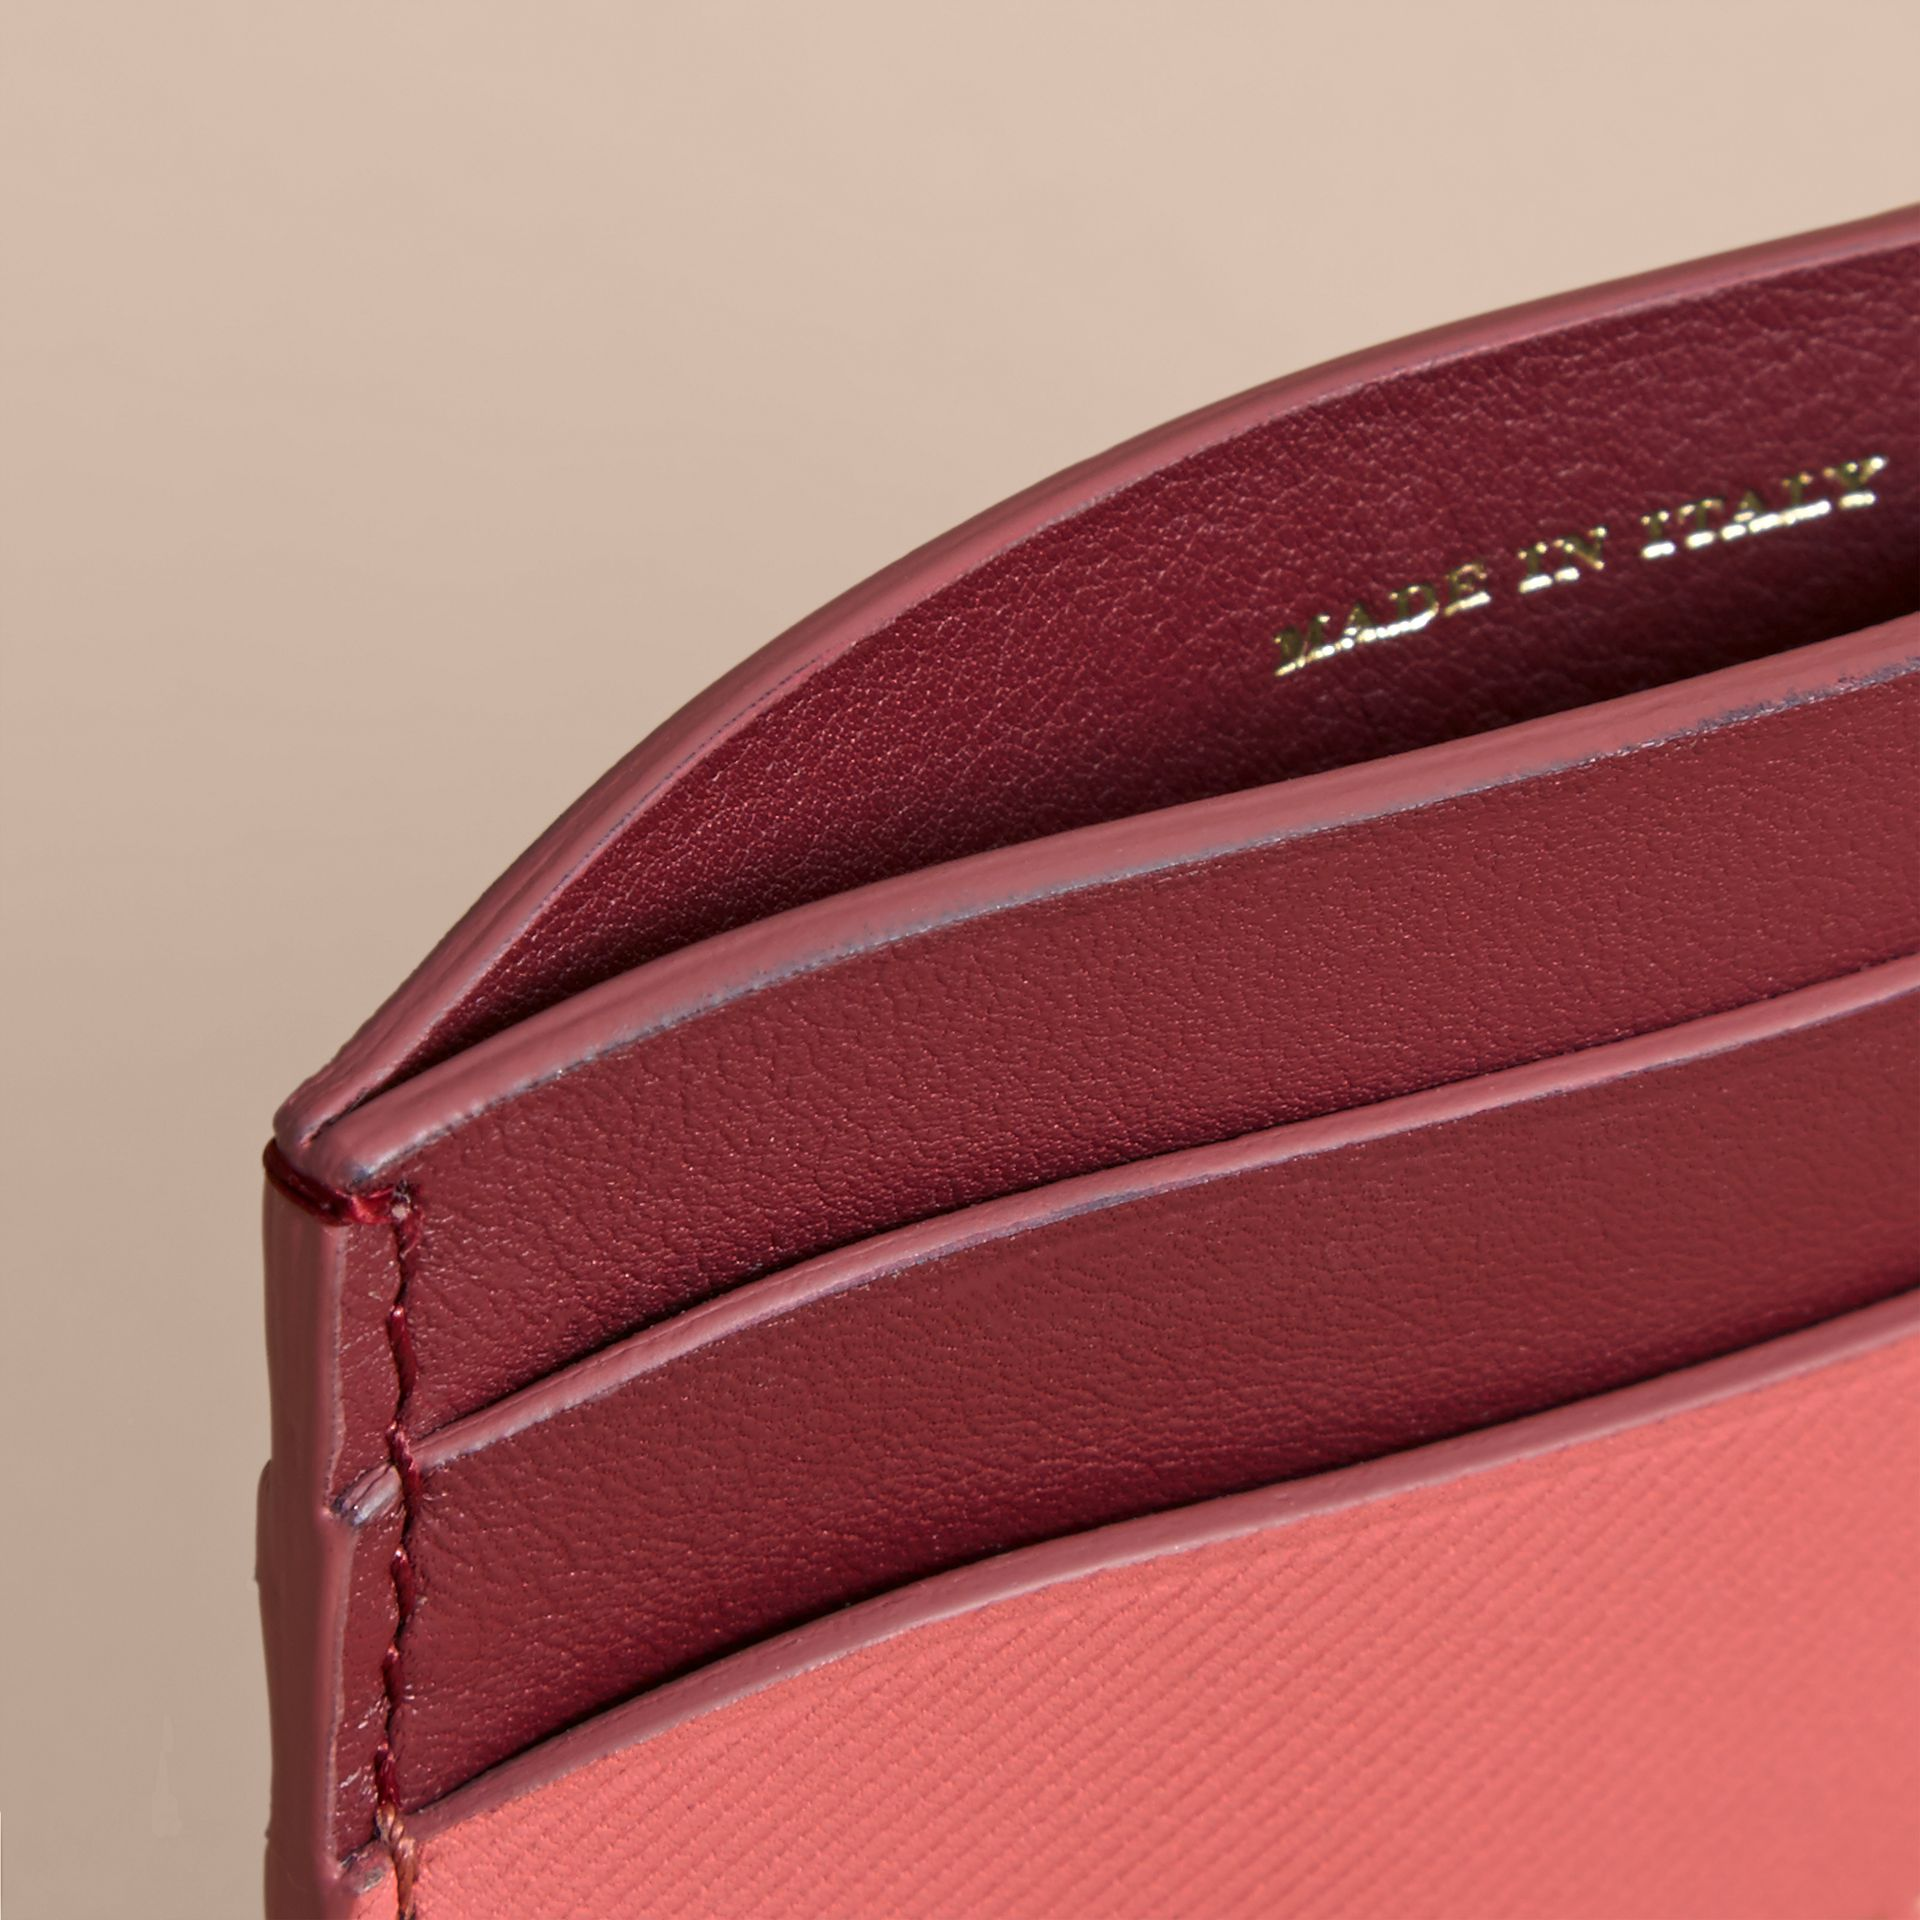 Two-tone Trench Leather Card Case in Blossom Pink/ Antique Red - Women | Burberry United Kingdom - gallery image 3